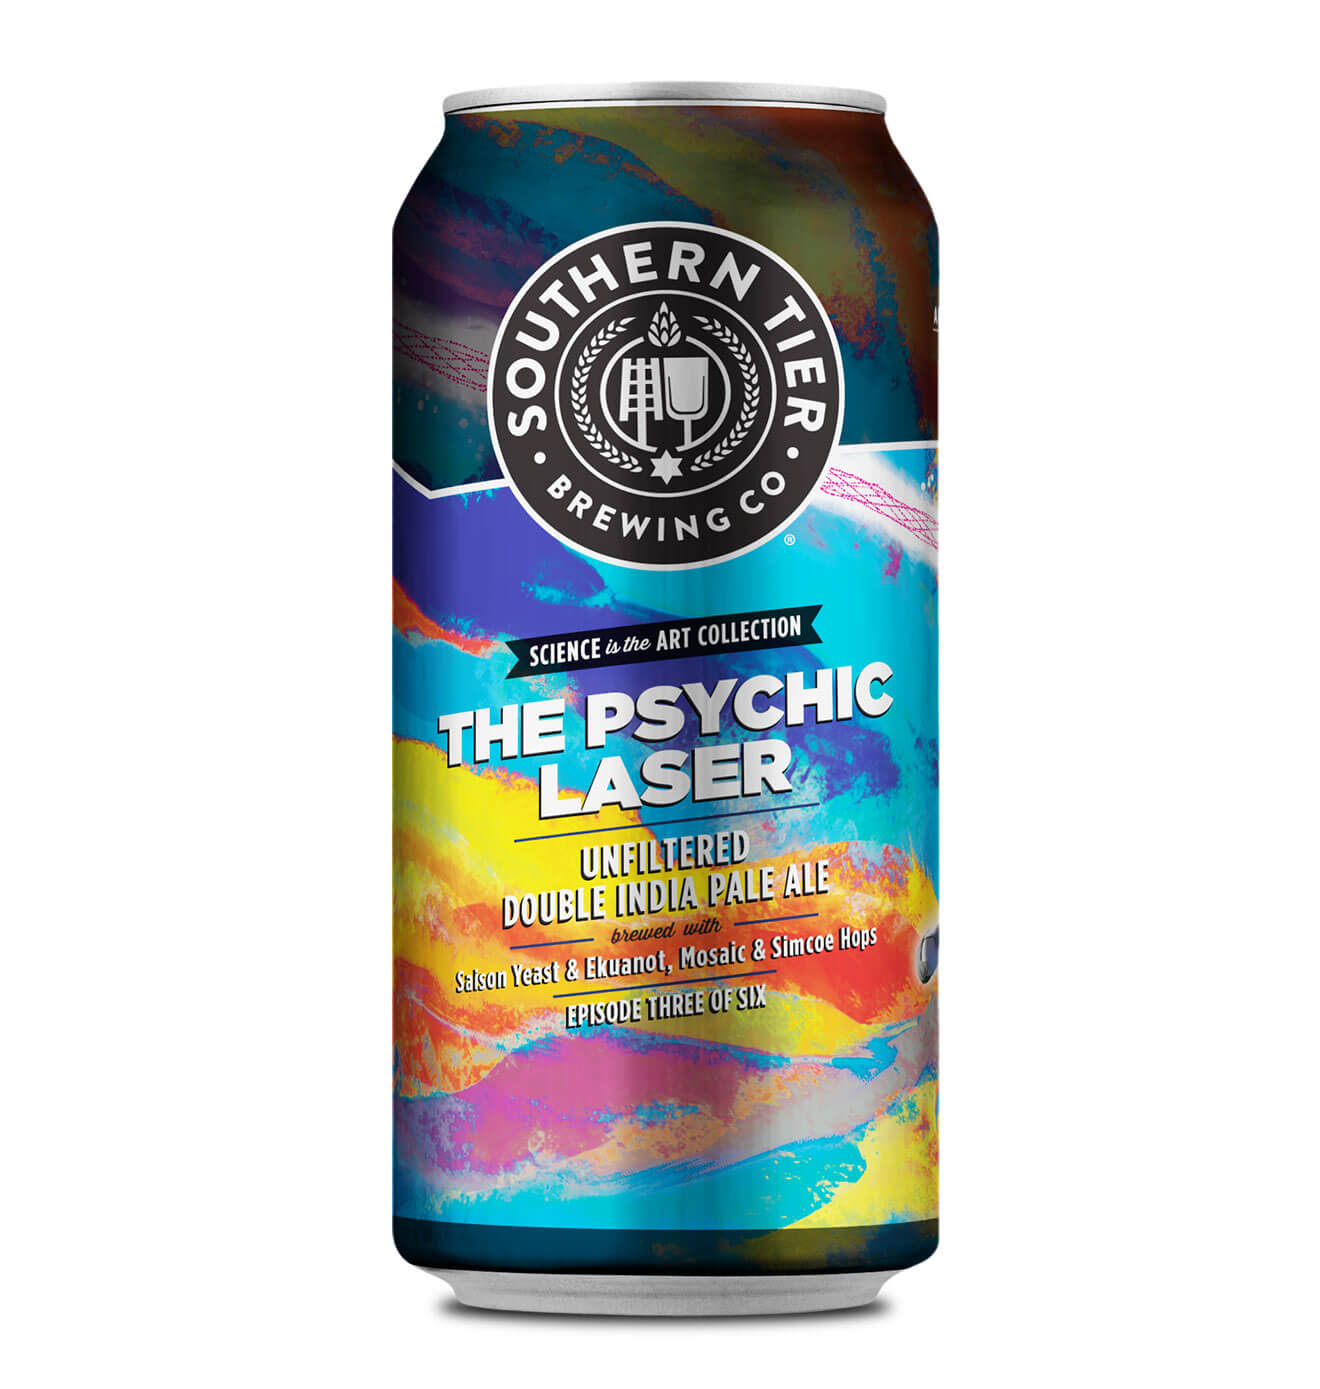 Southern Tier Brewing Company The Psychic Laser, can on white